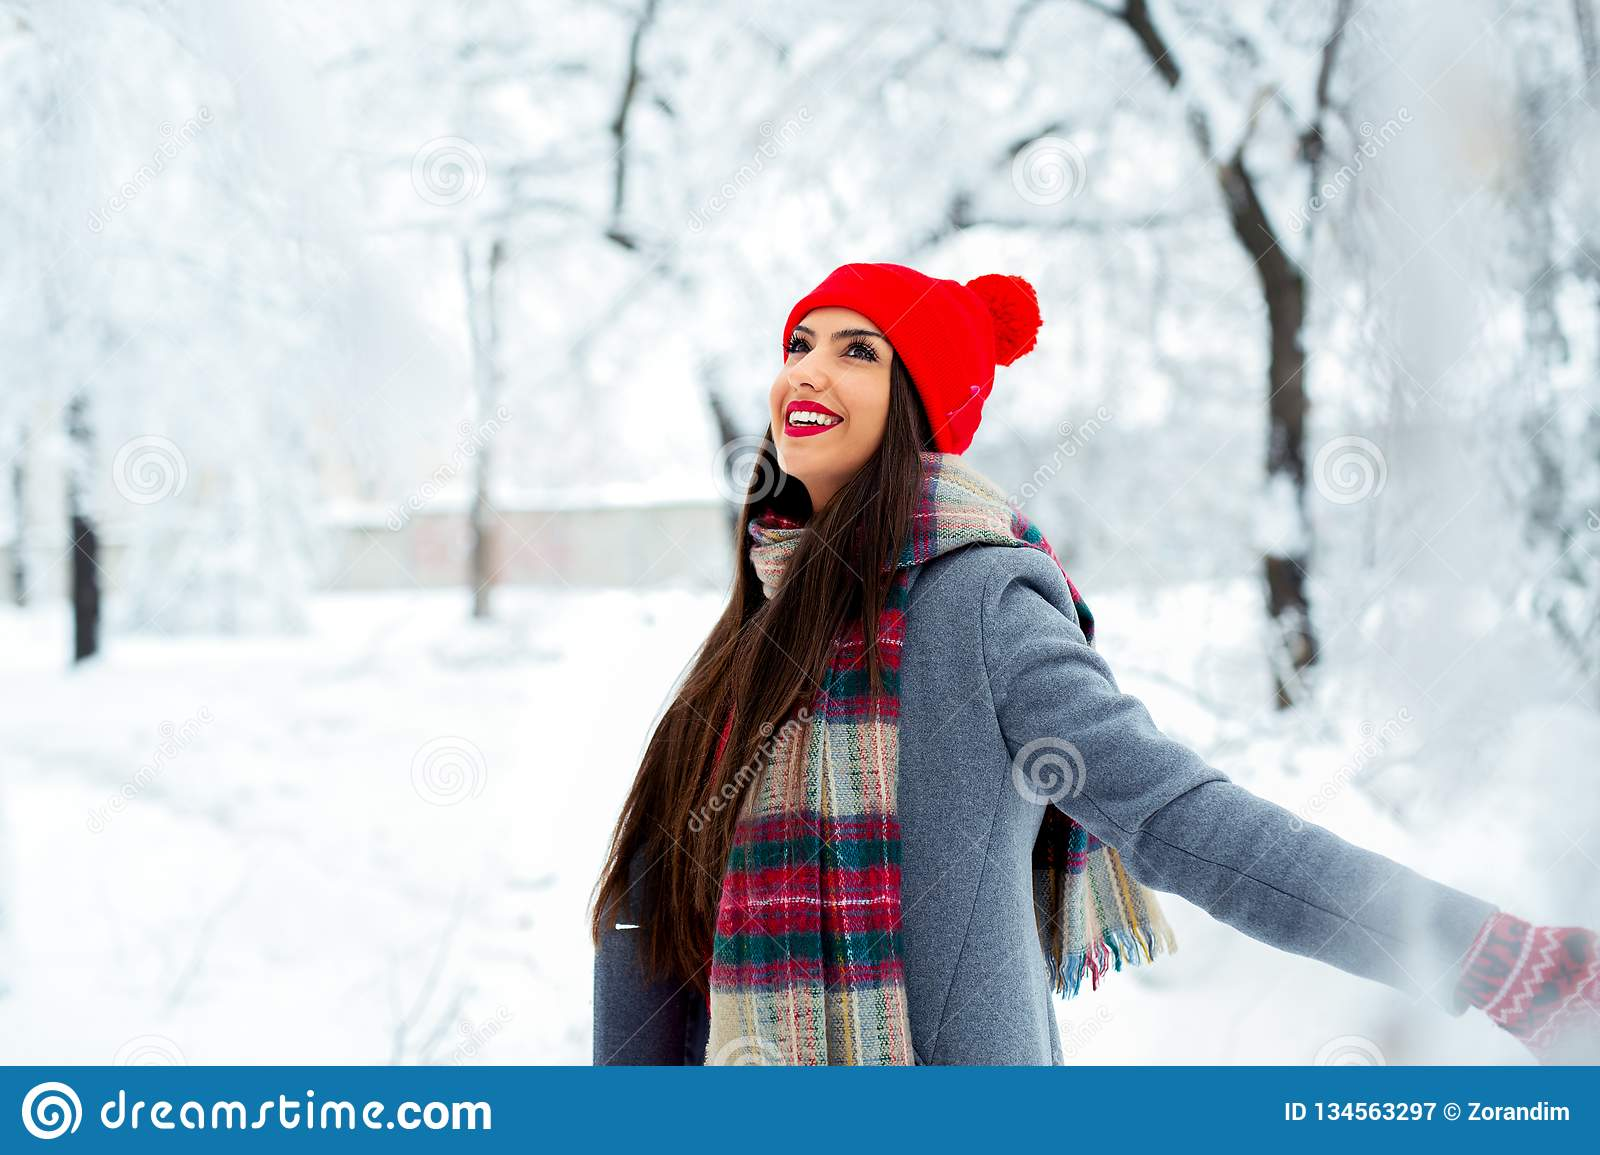 Fashion young woman in the winter time - Image